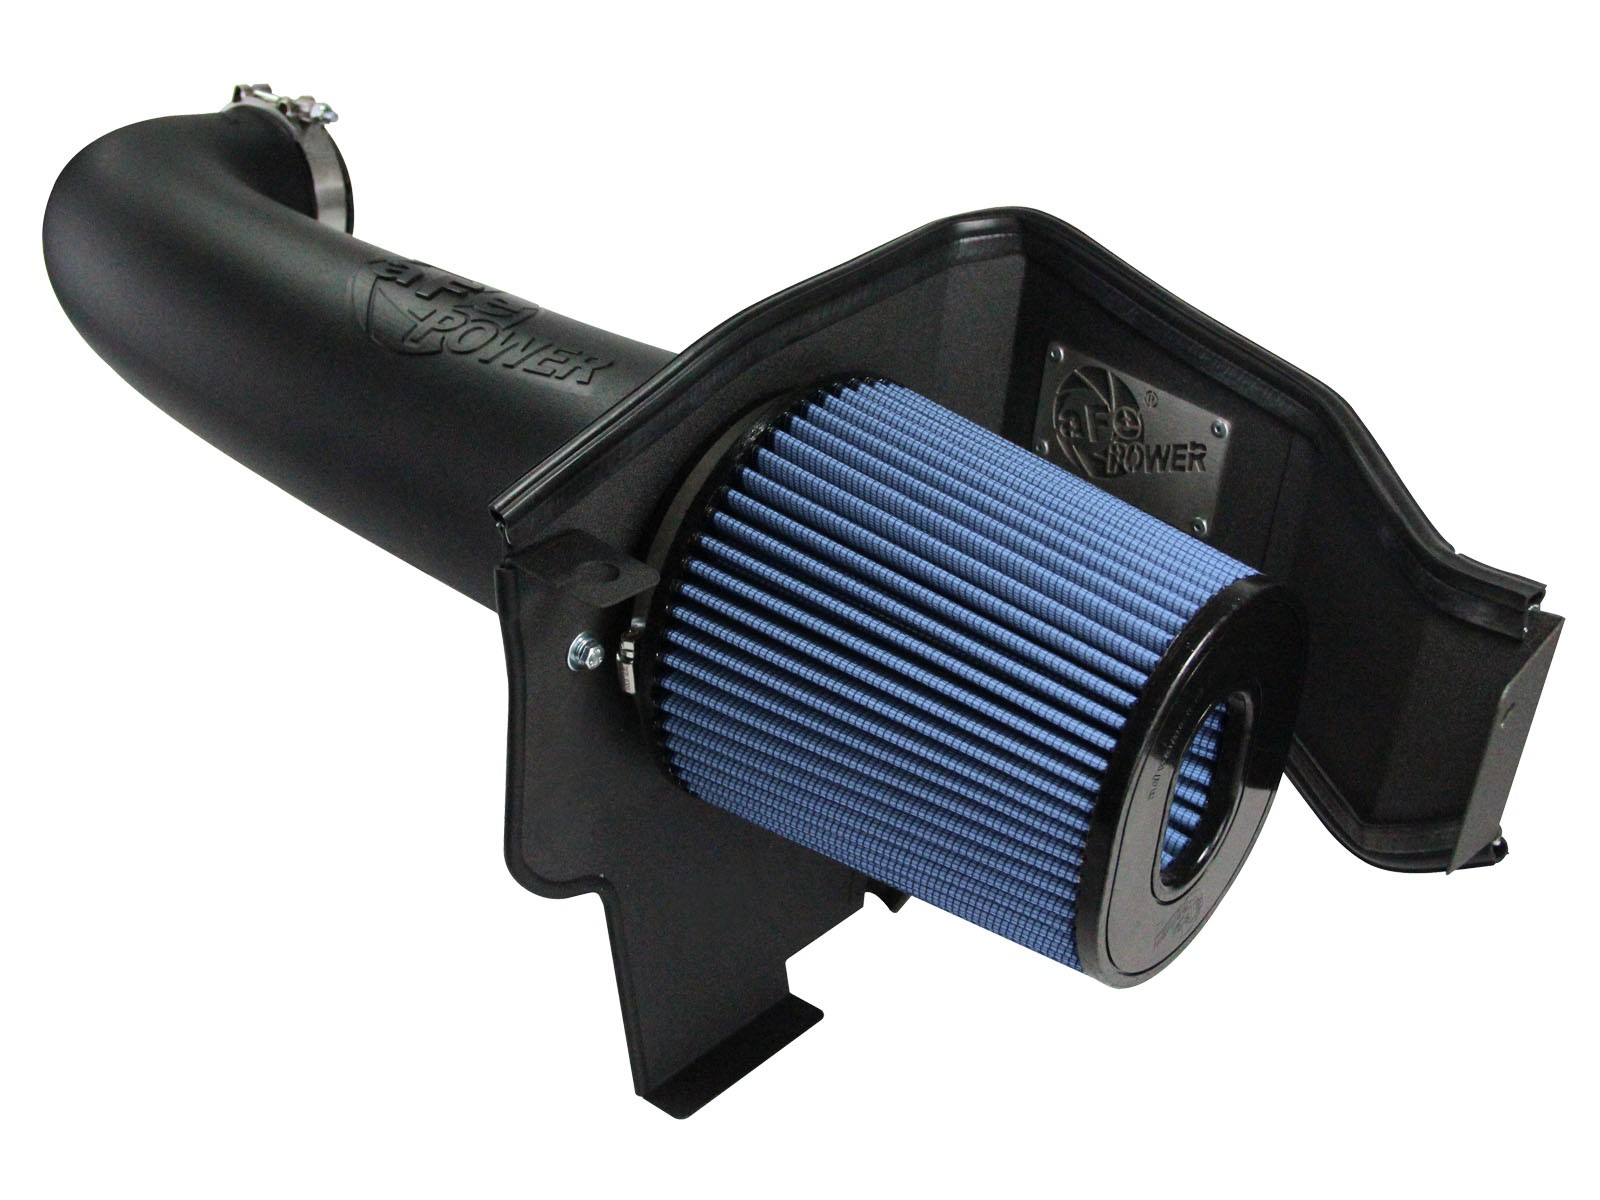 aFe POWER 54-12162 Magnum FORCE Stage-2 Pro 5R Cold Air Intake System